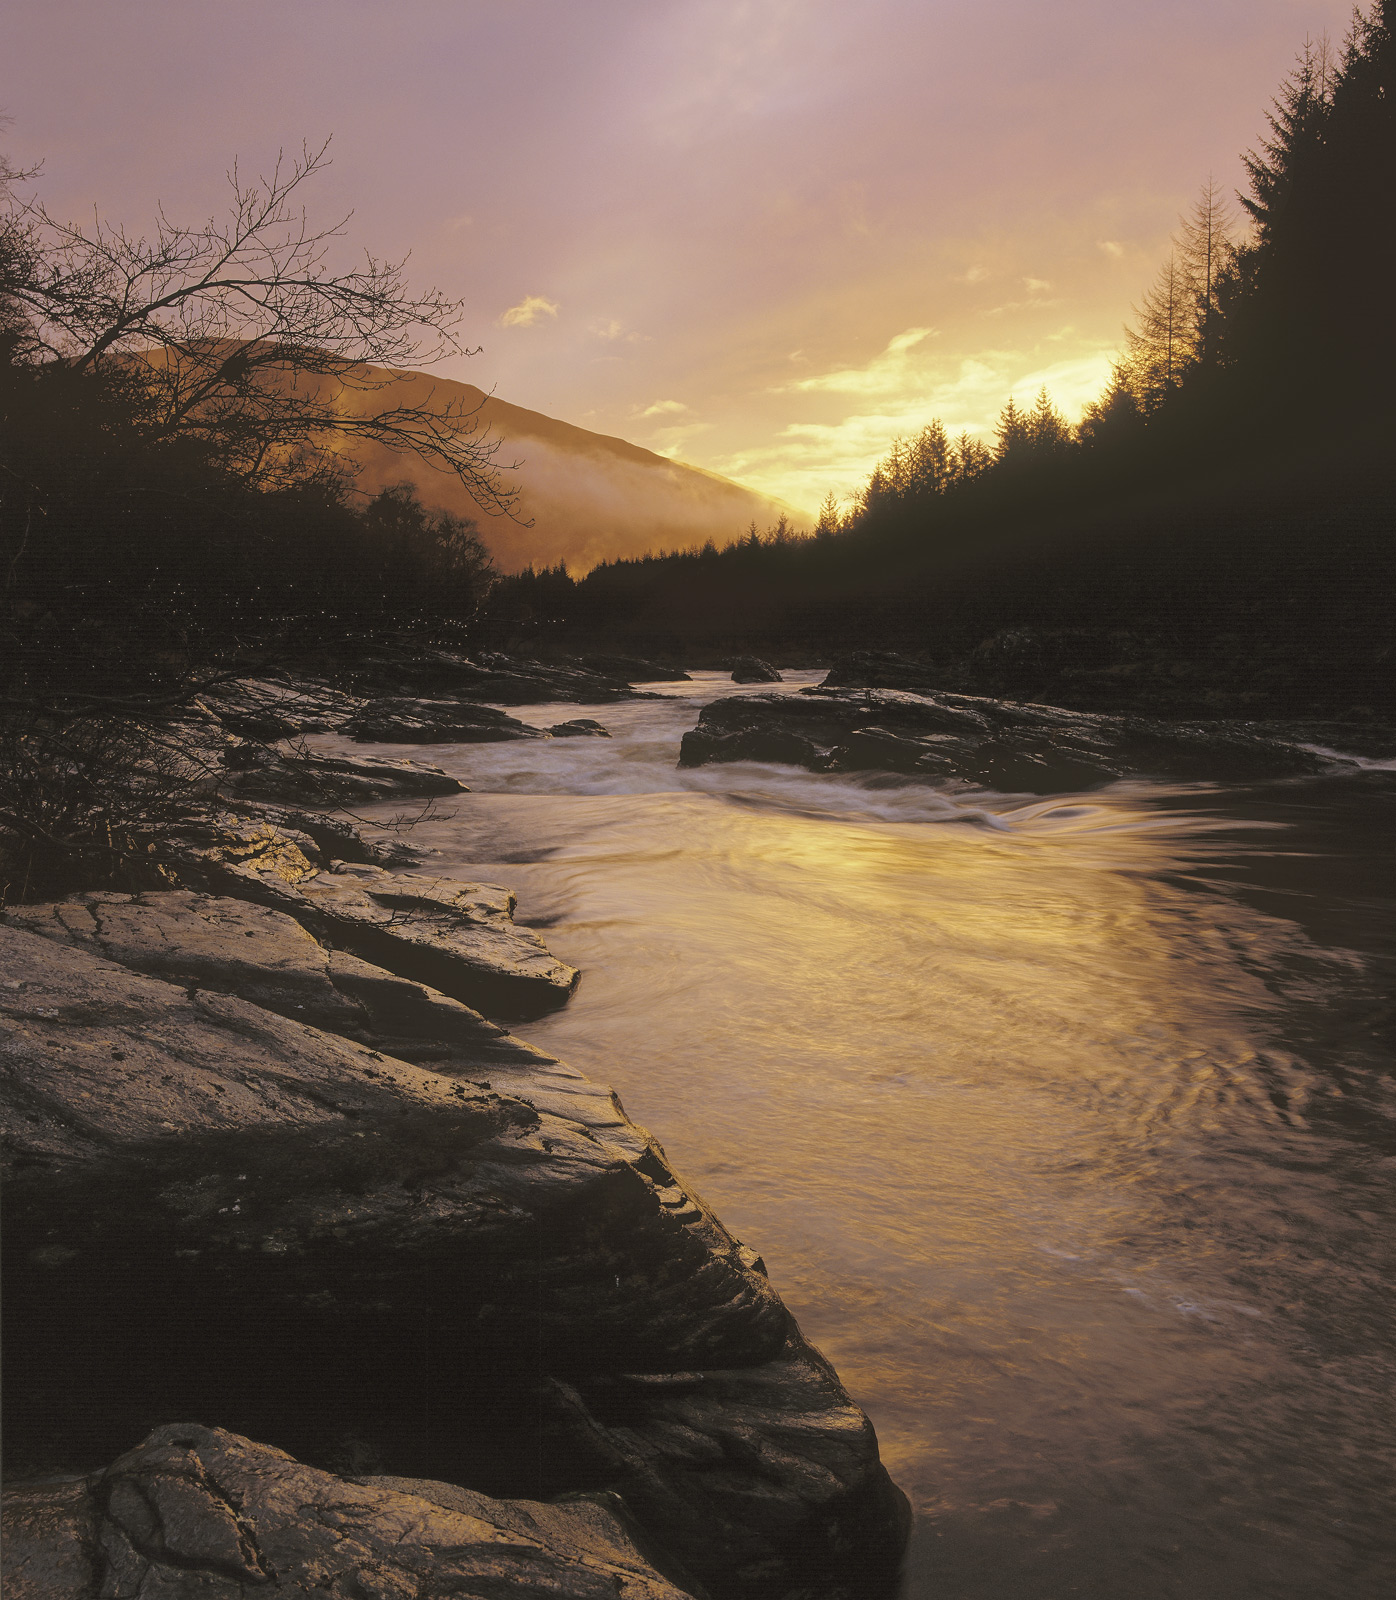 River Orchy Gold, Glen Orchy, Highlands, Scotland, winter, drizzle, shelter, river, exquisite, golden, sunlight, reflect, photo